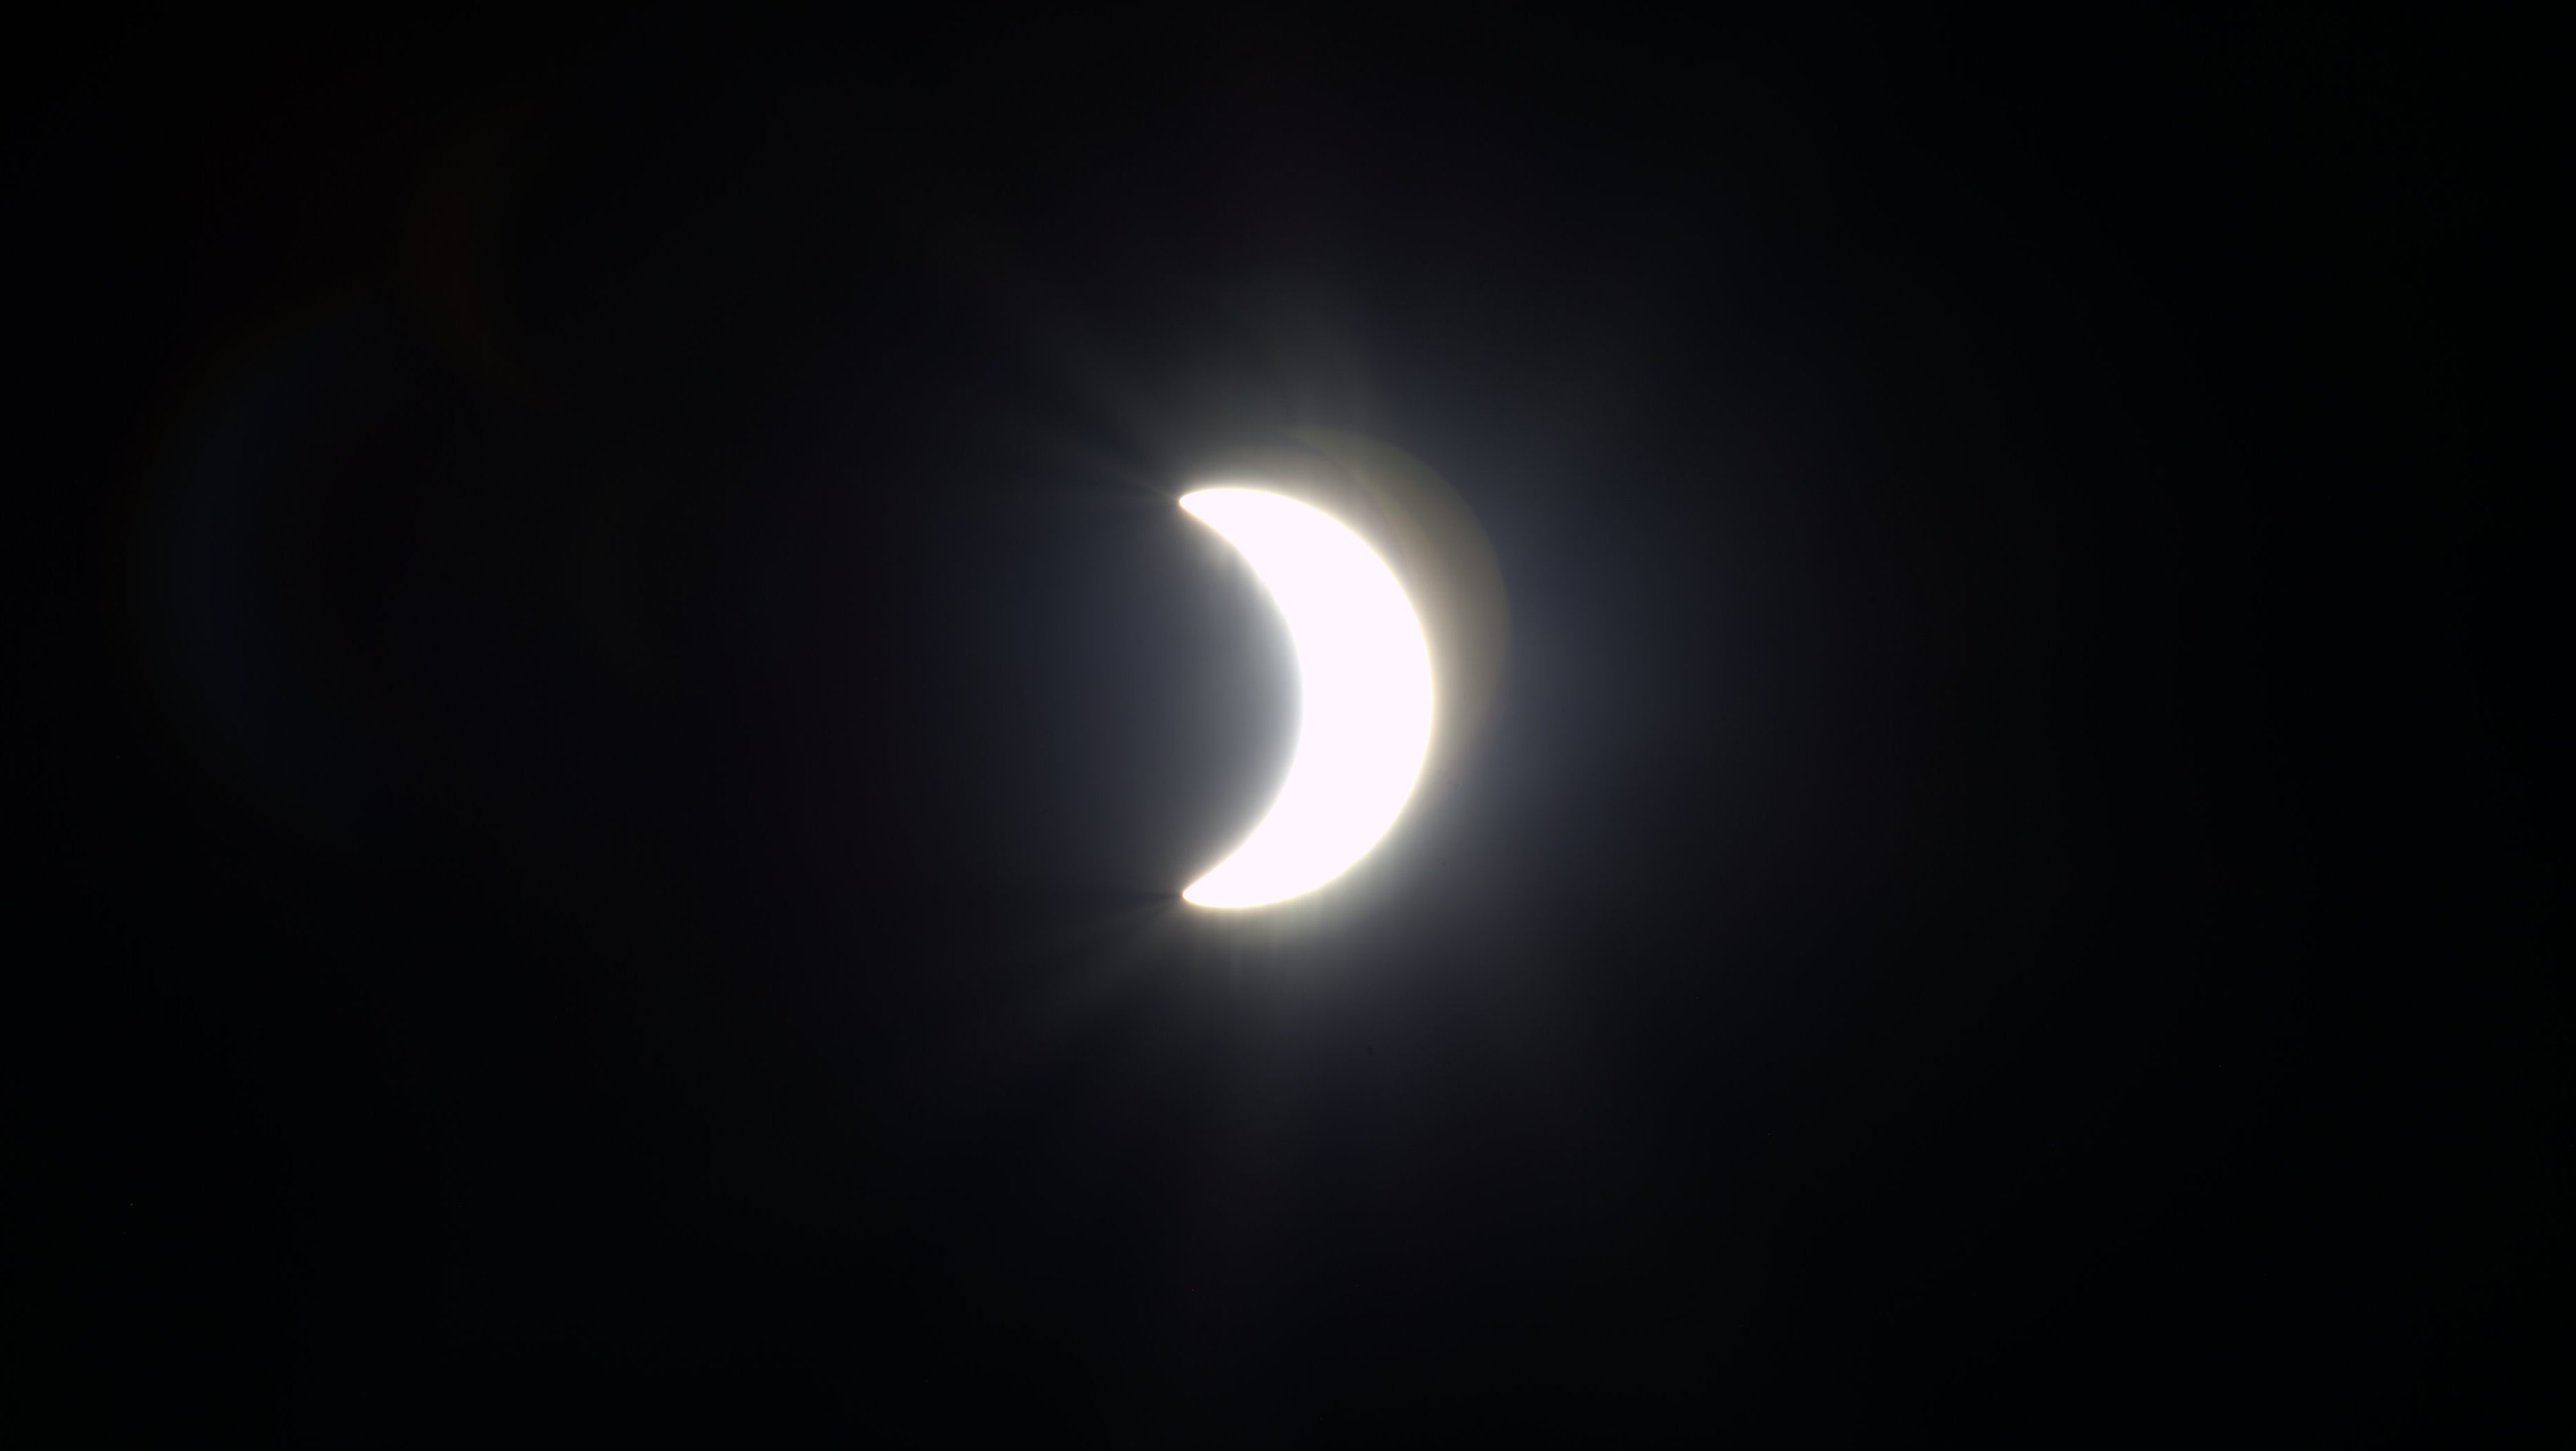 nasa-international-space-station-solar-eclipse